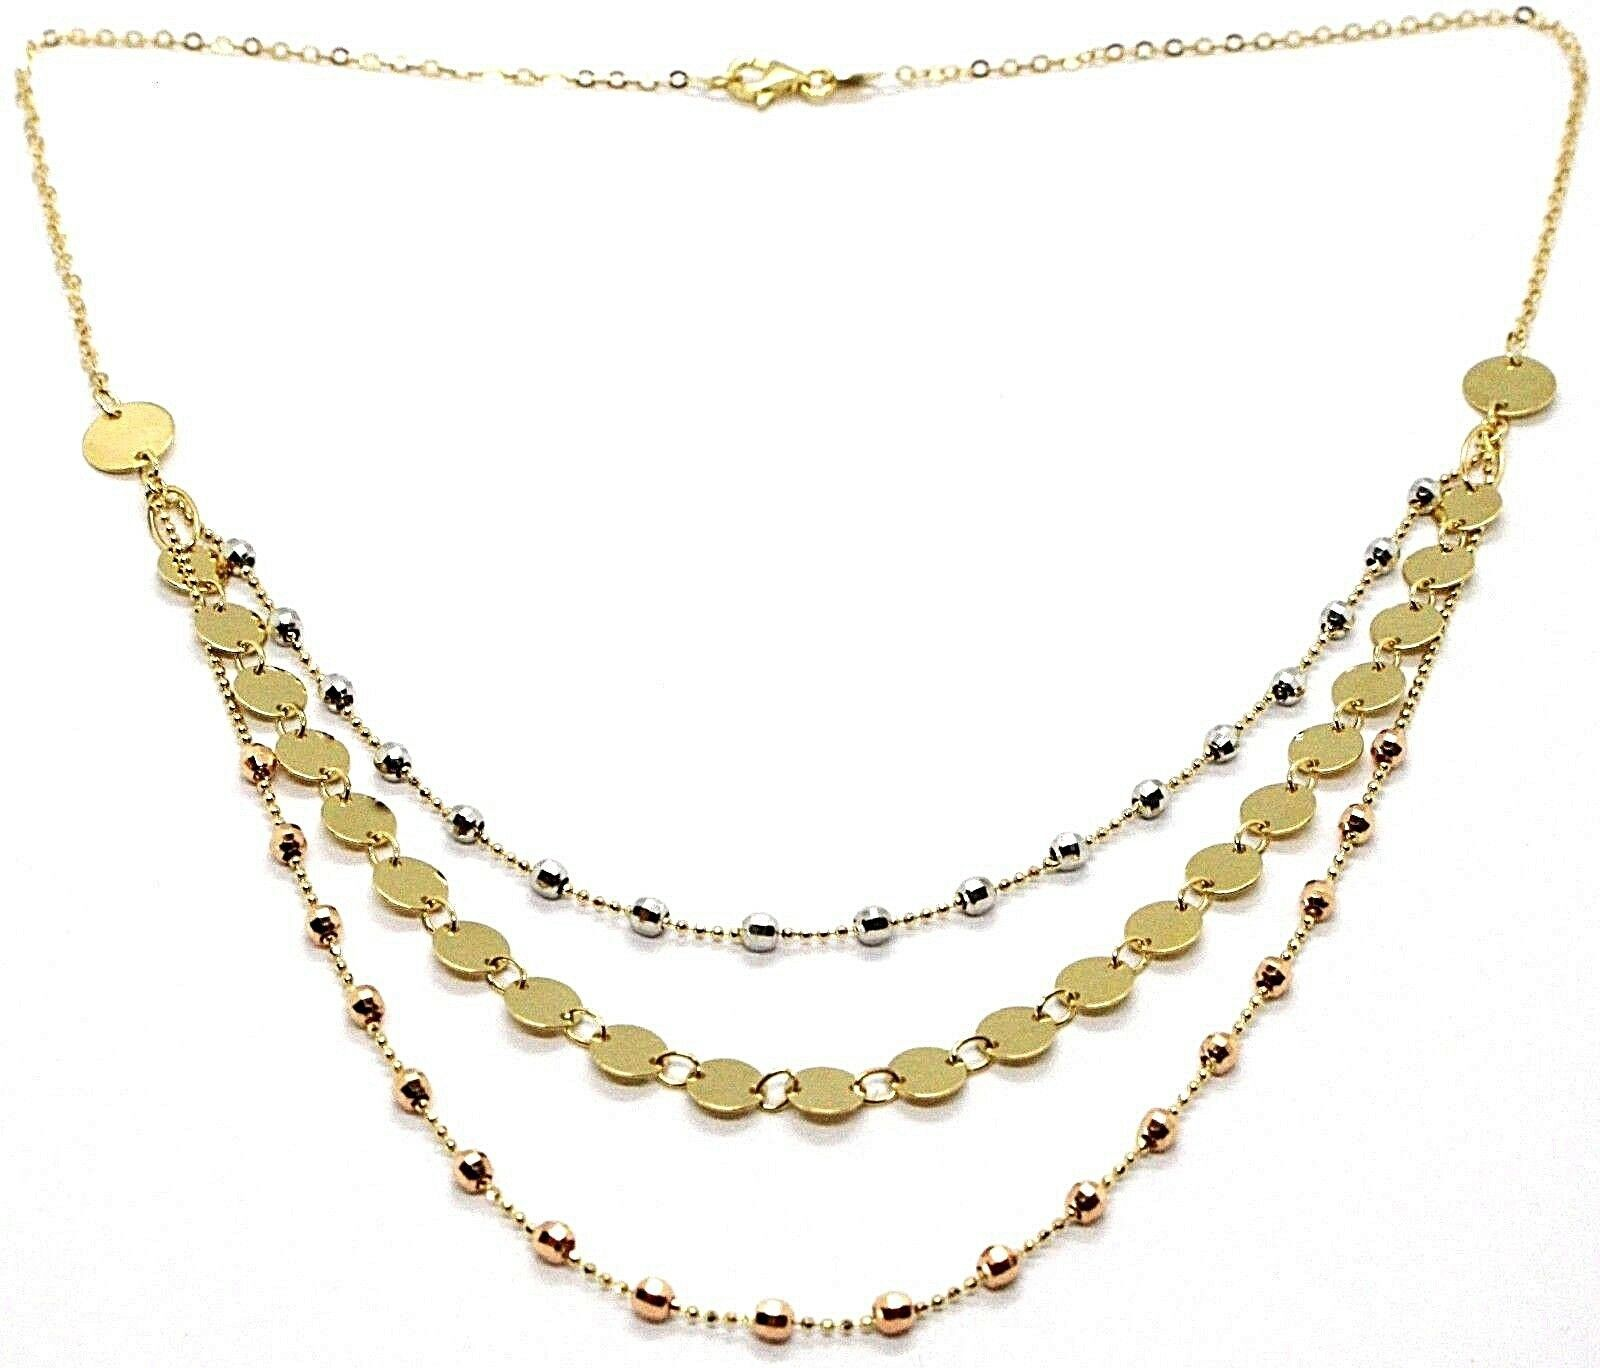 18K YELLOW WHITE ROSE GOLD STRAND NECKLACE, MULTI THREE WIRES WITH DISCS & BALLS